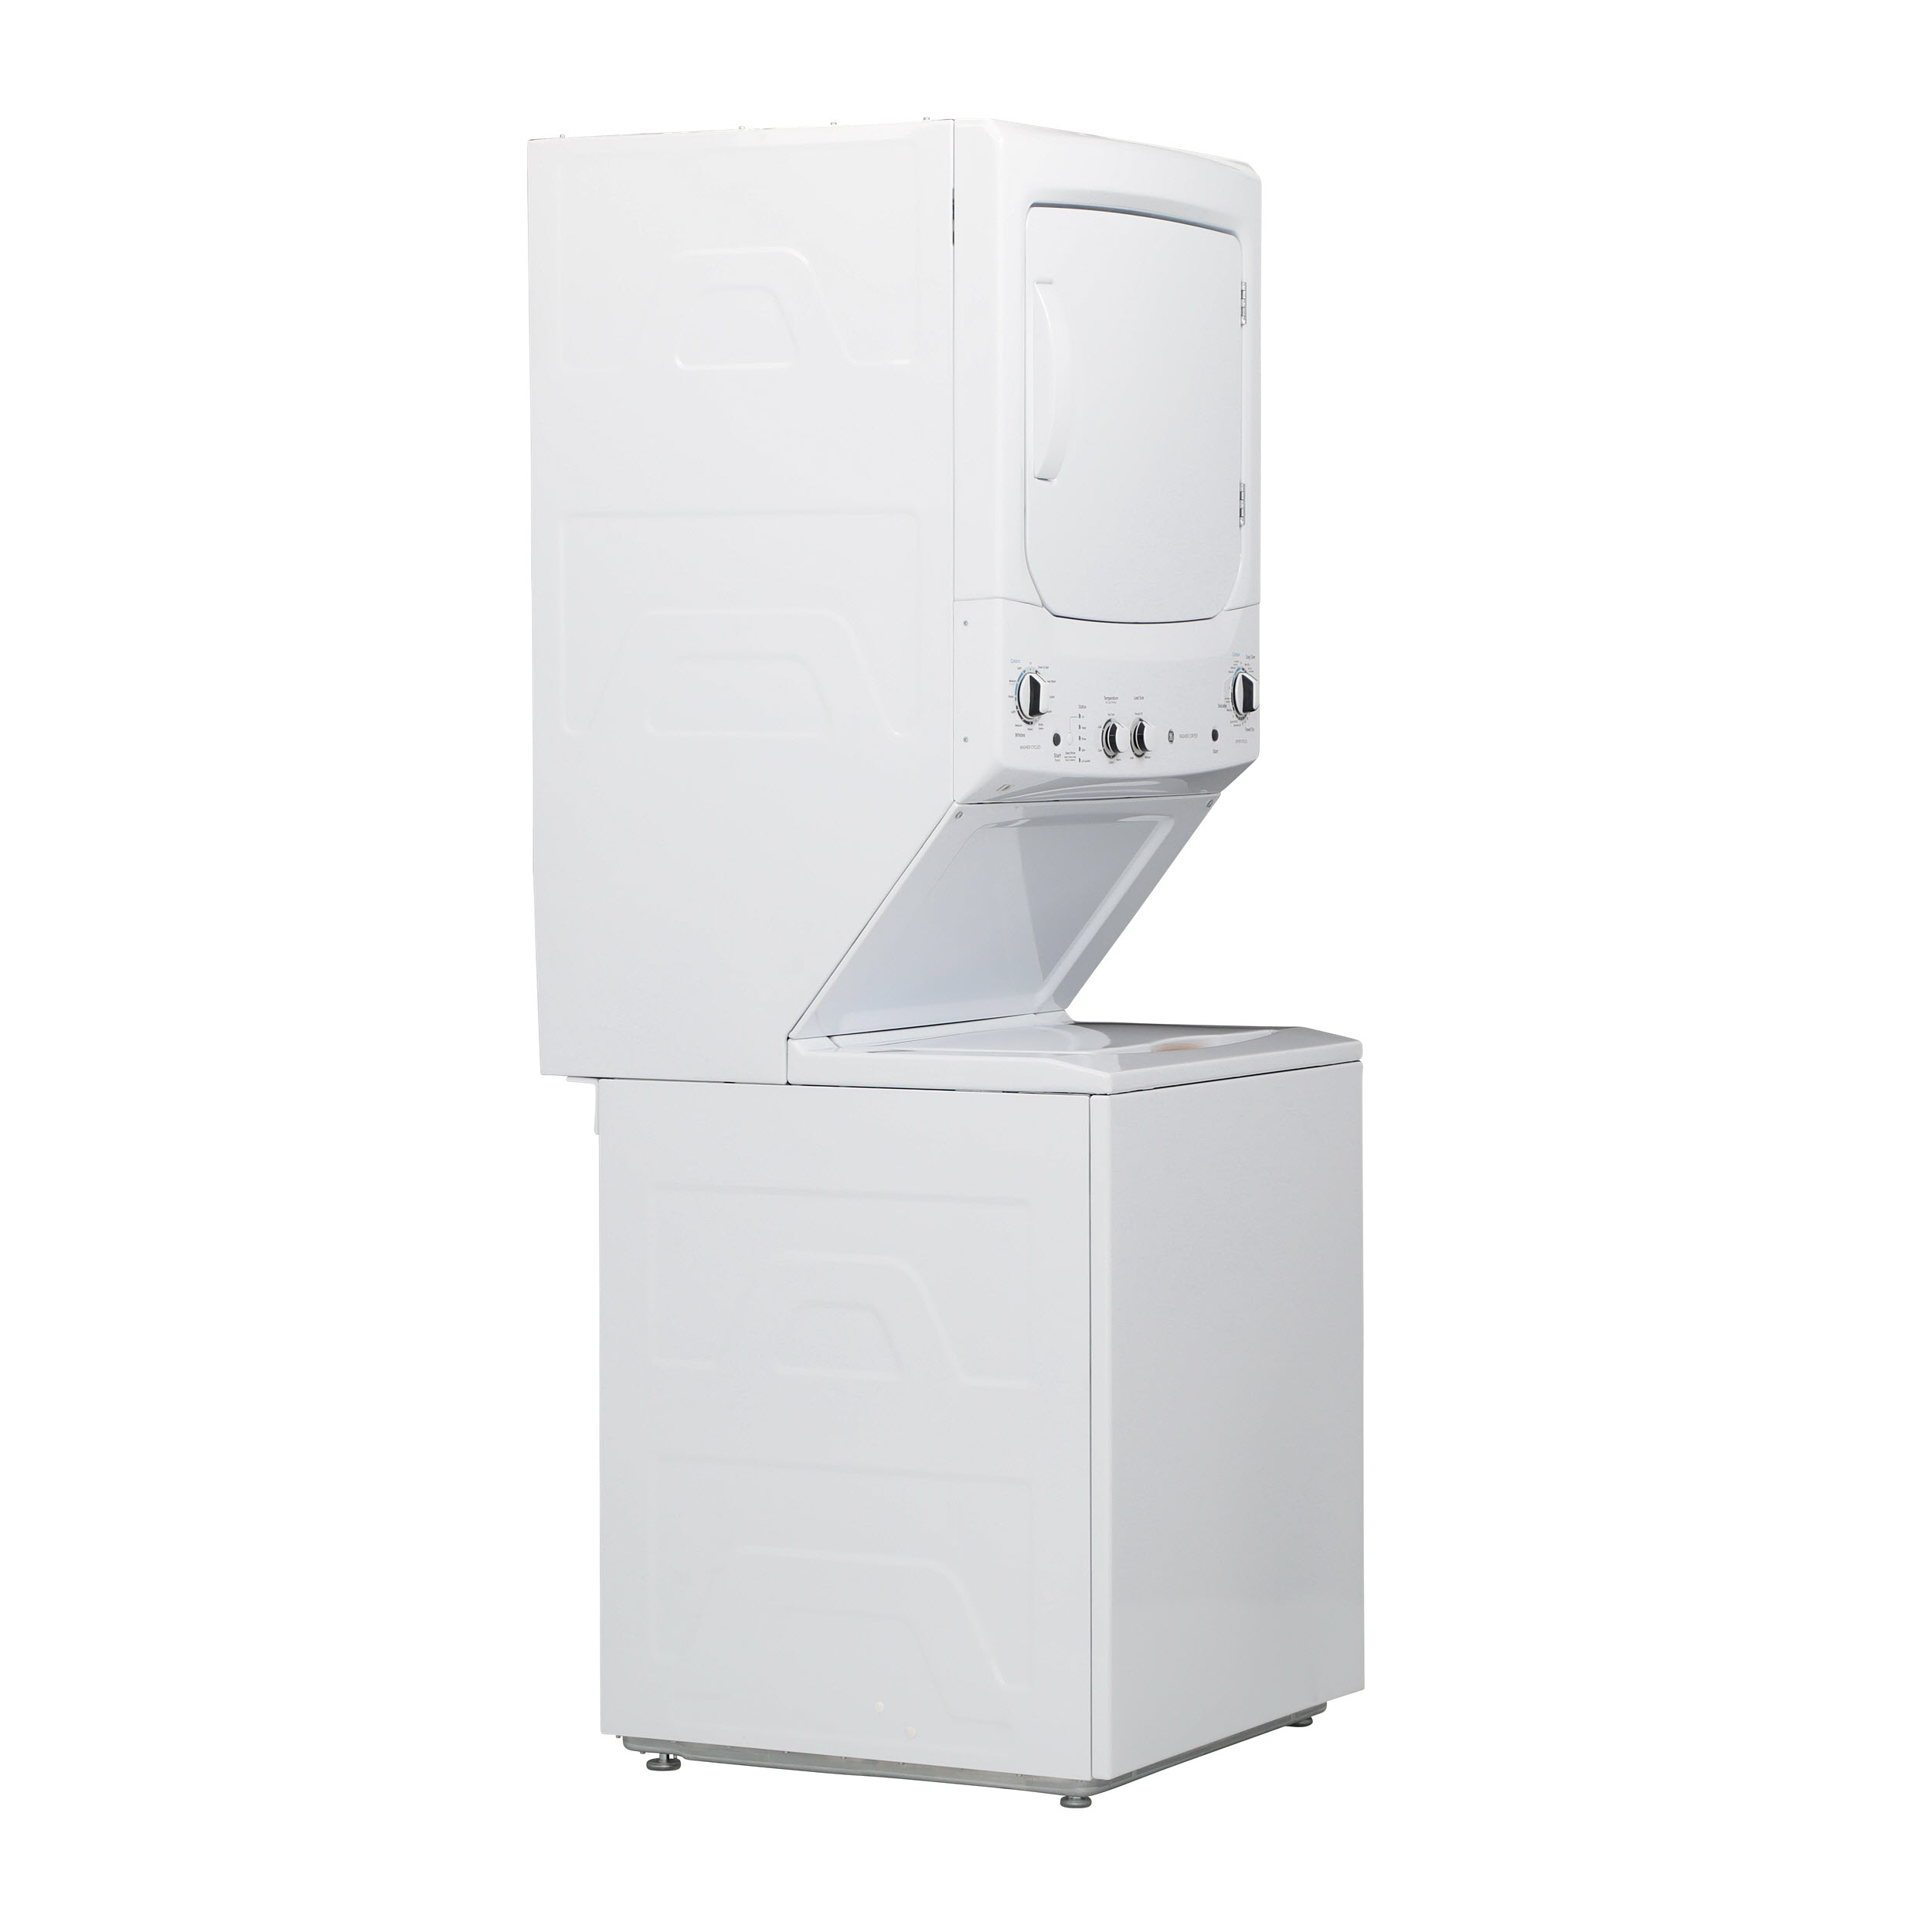 Model: GUD27GSSMWW | GE GE Unitized Spacemaker® 3.8 cu. ft. Capacity Washer with Stainless Steel Basket and 5.9 cu. ft. Capacity Gas Dryer